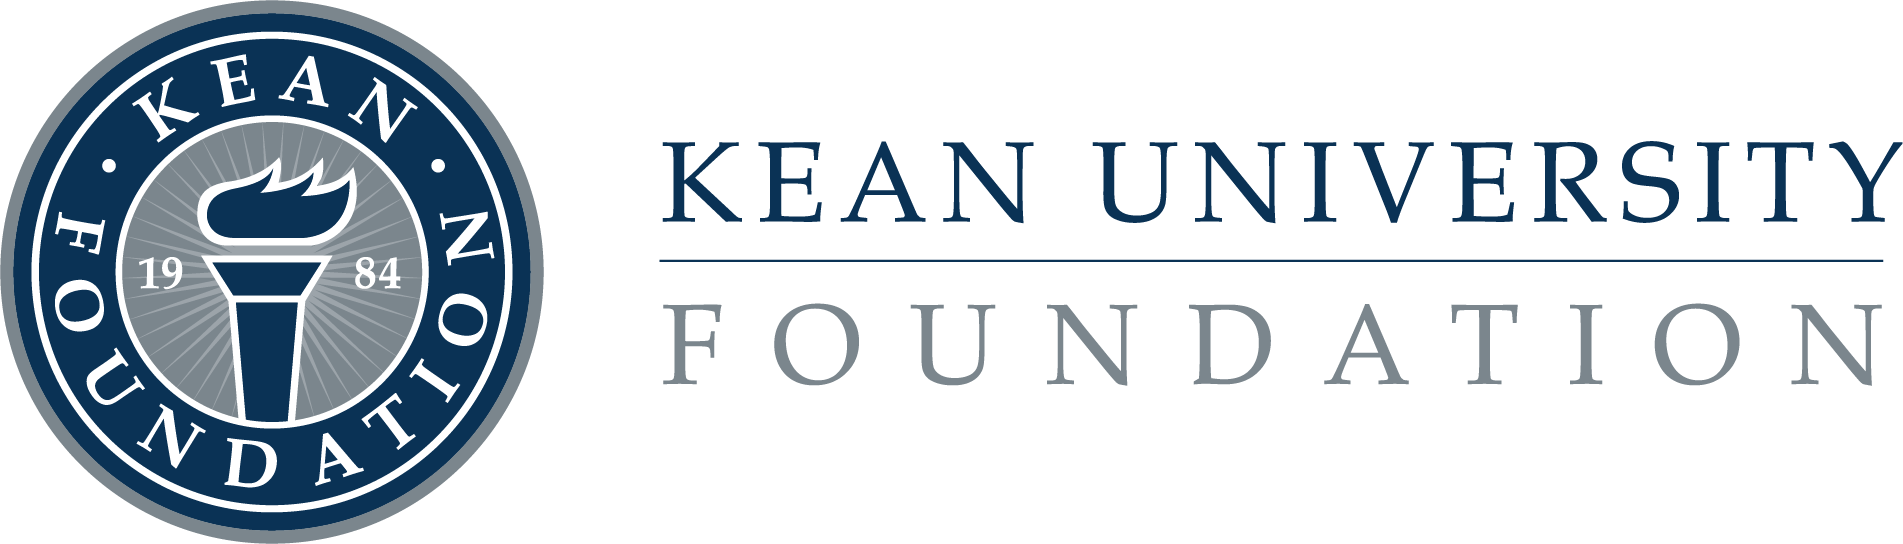 Kean University Foundation